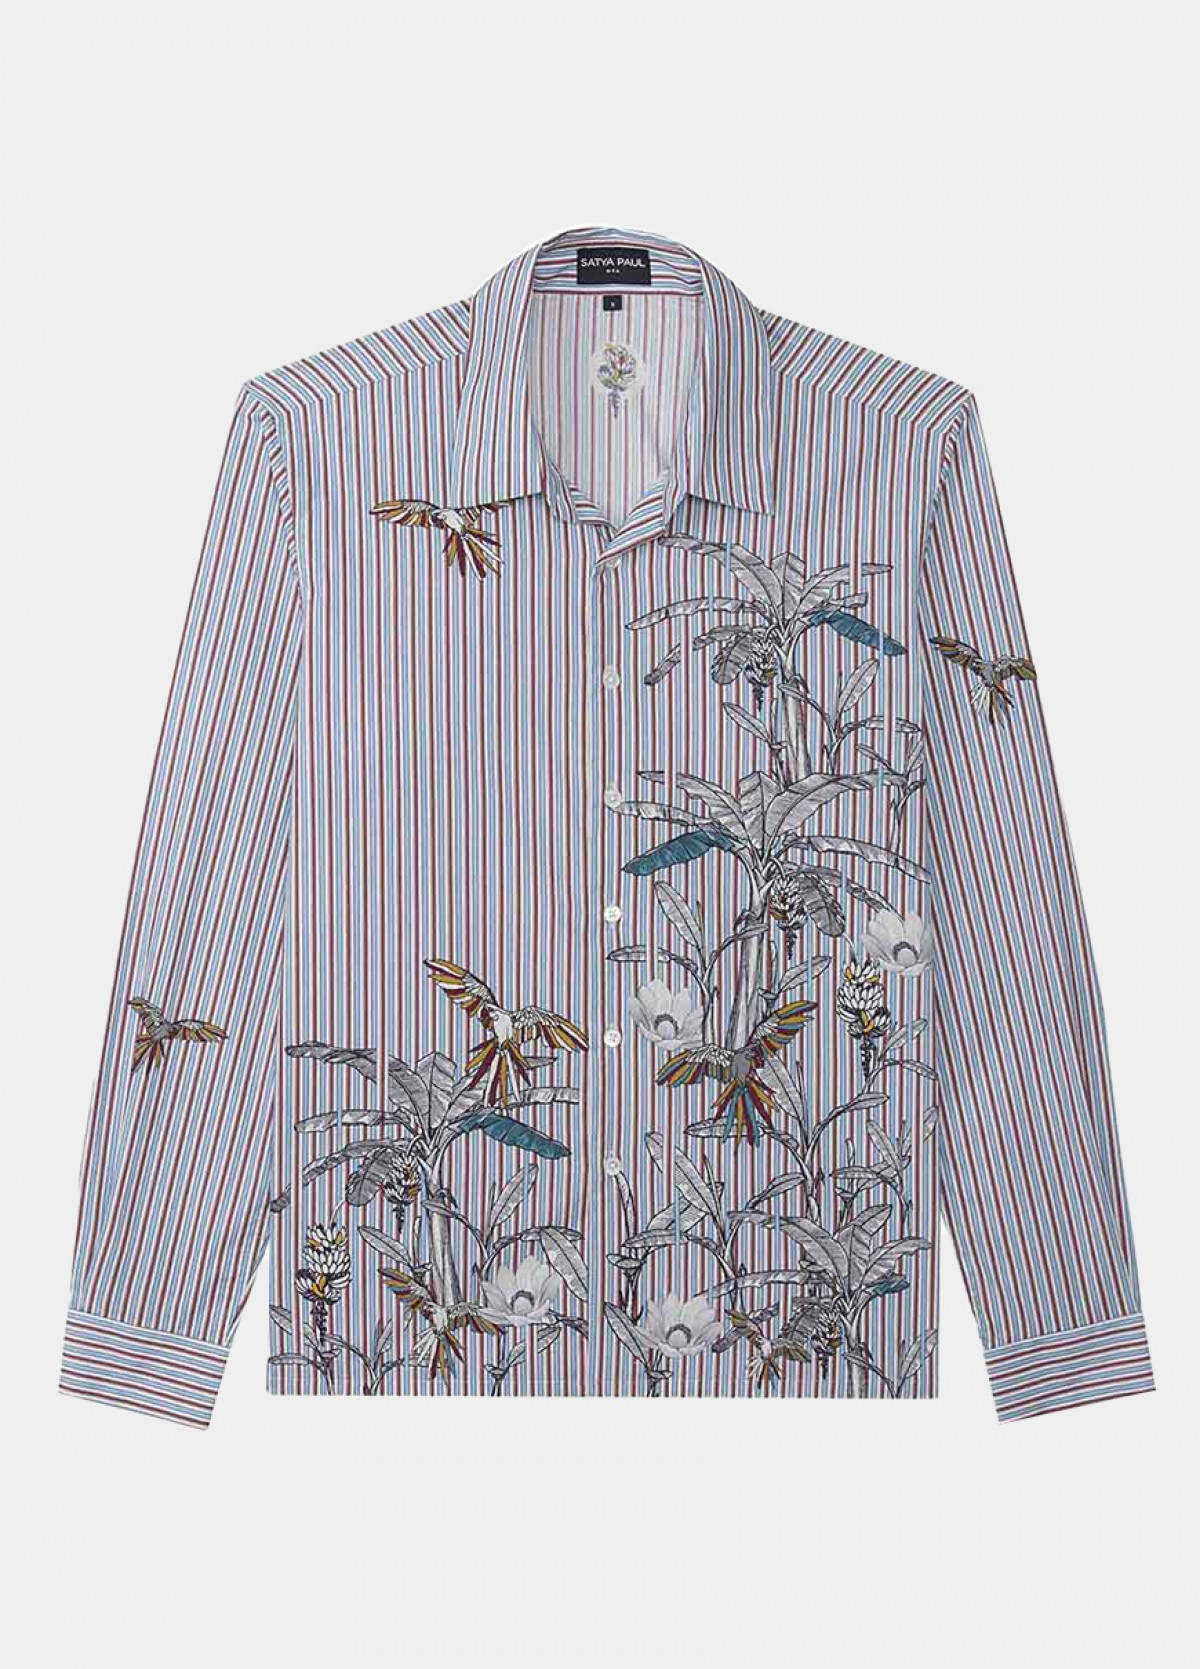 The Birds Eye Shirt